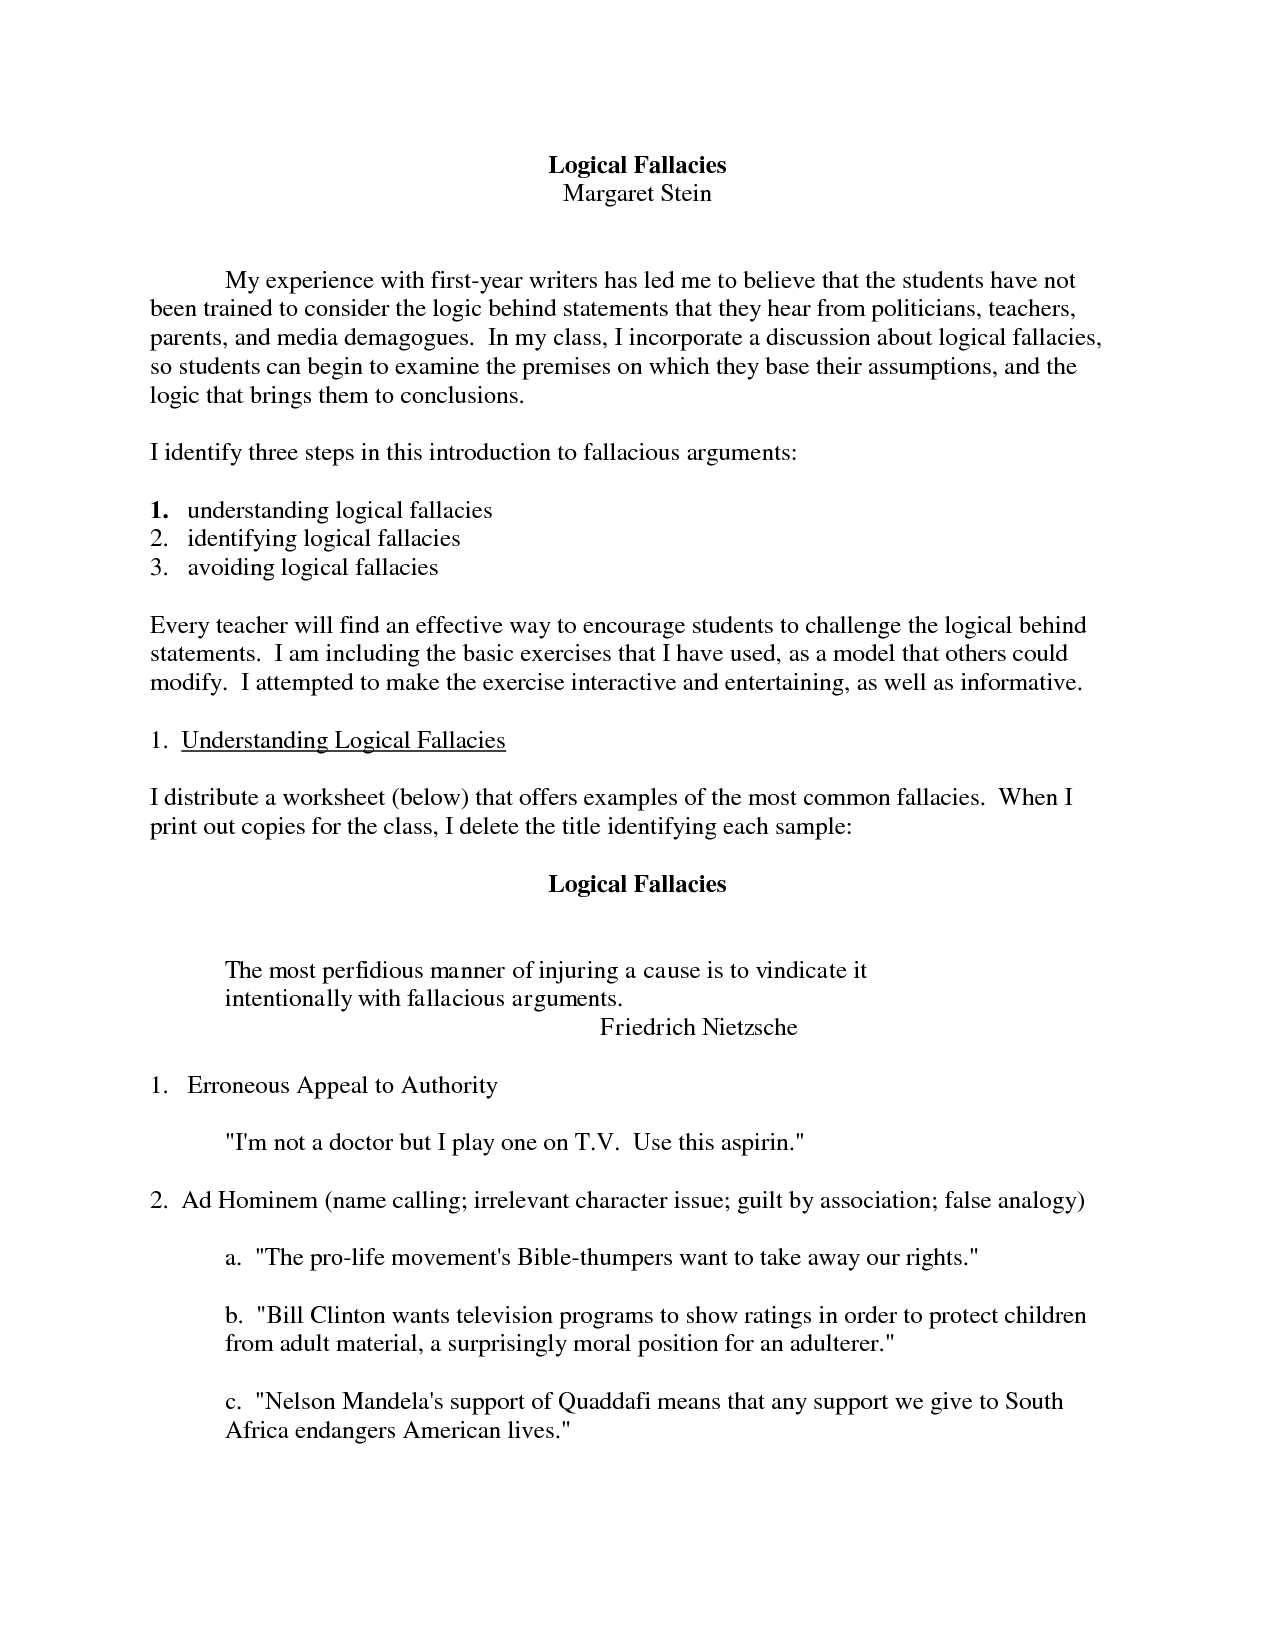 Fallacy Practice Worksheet